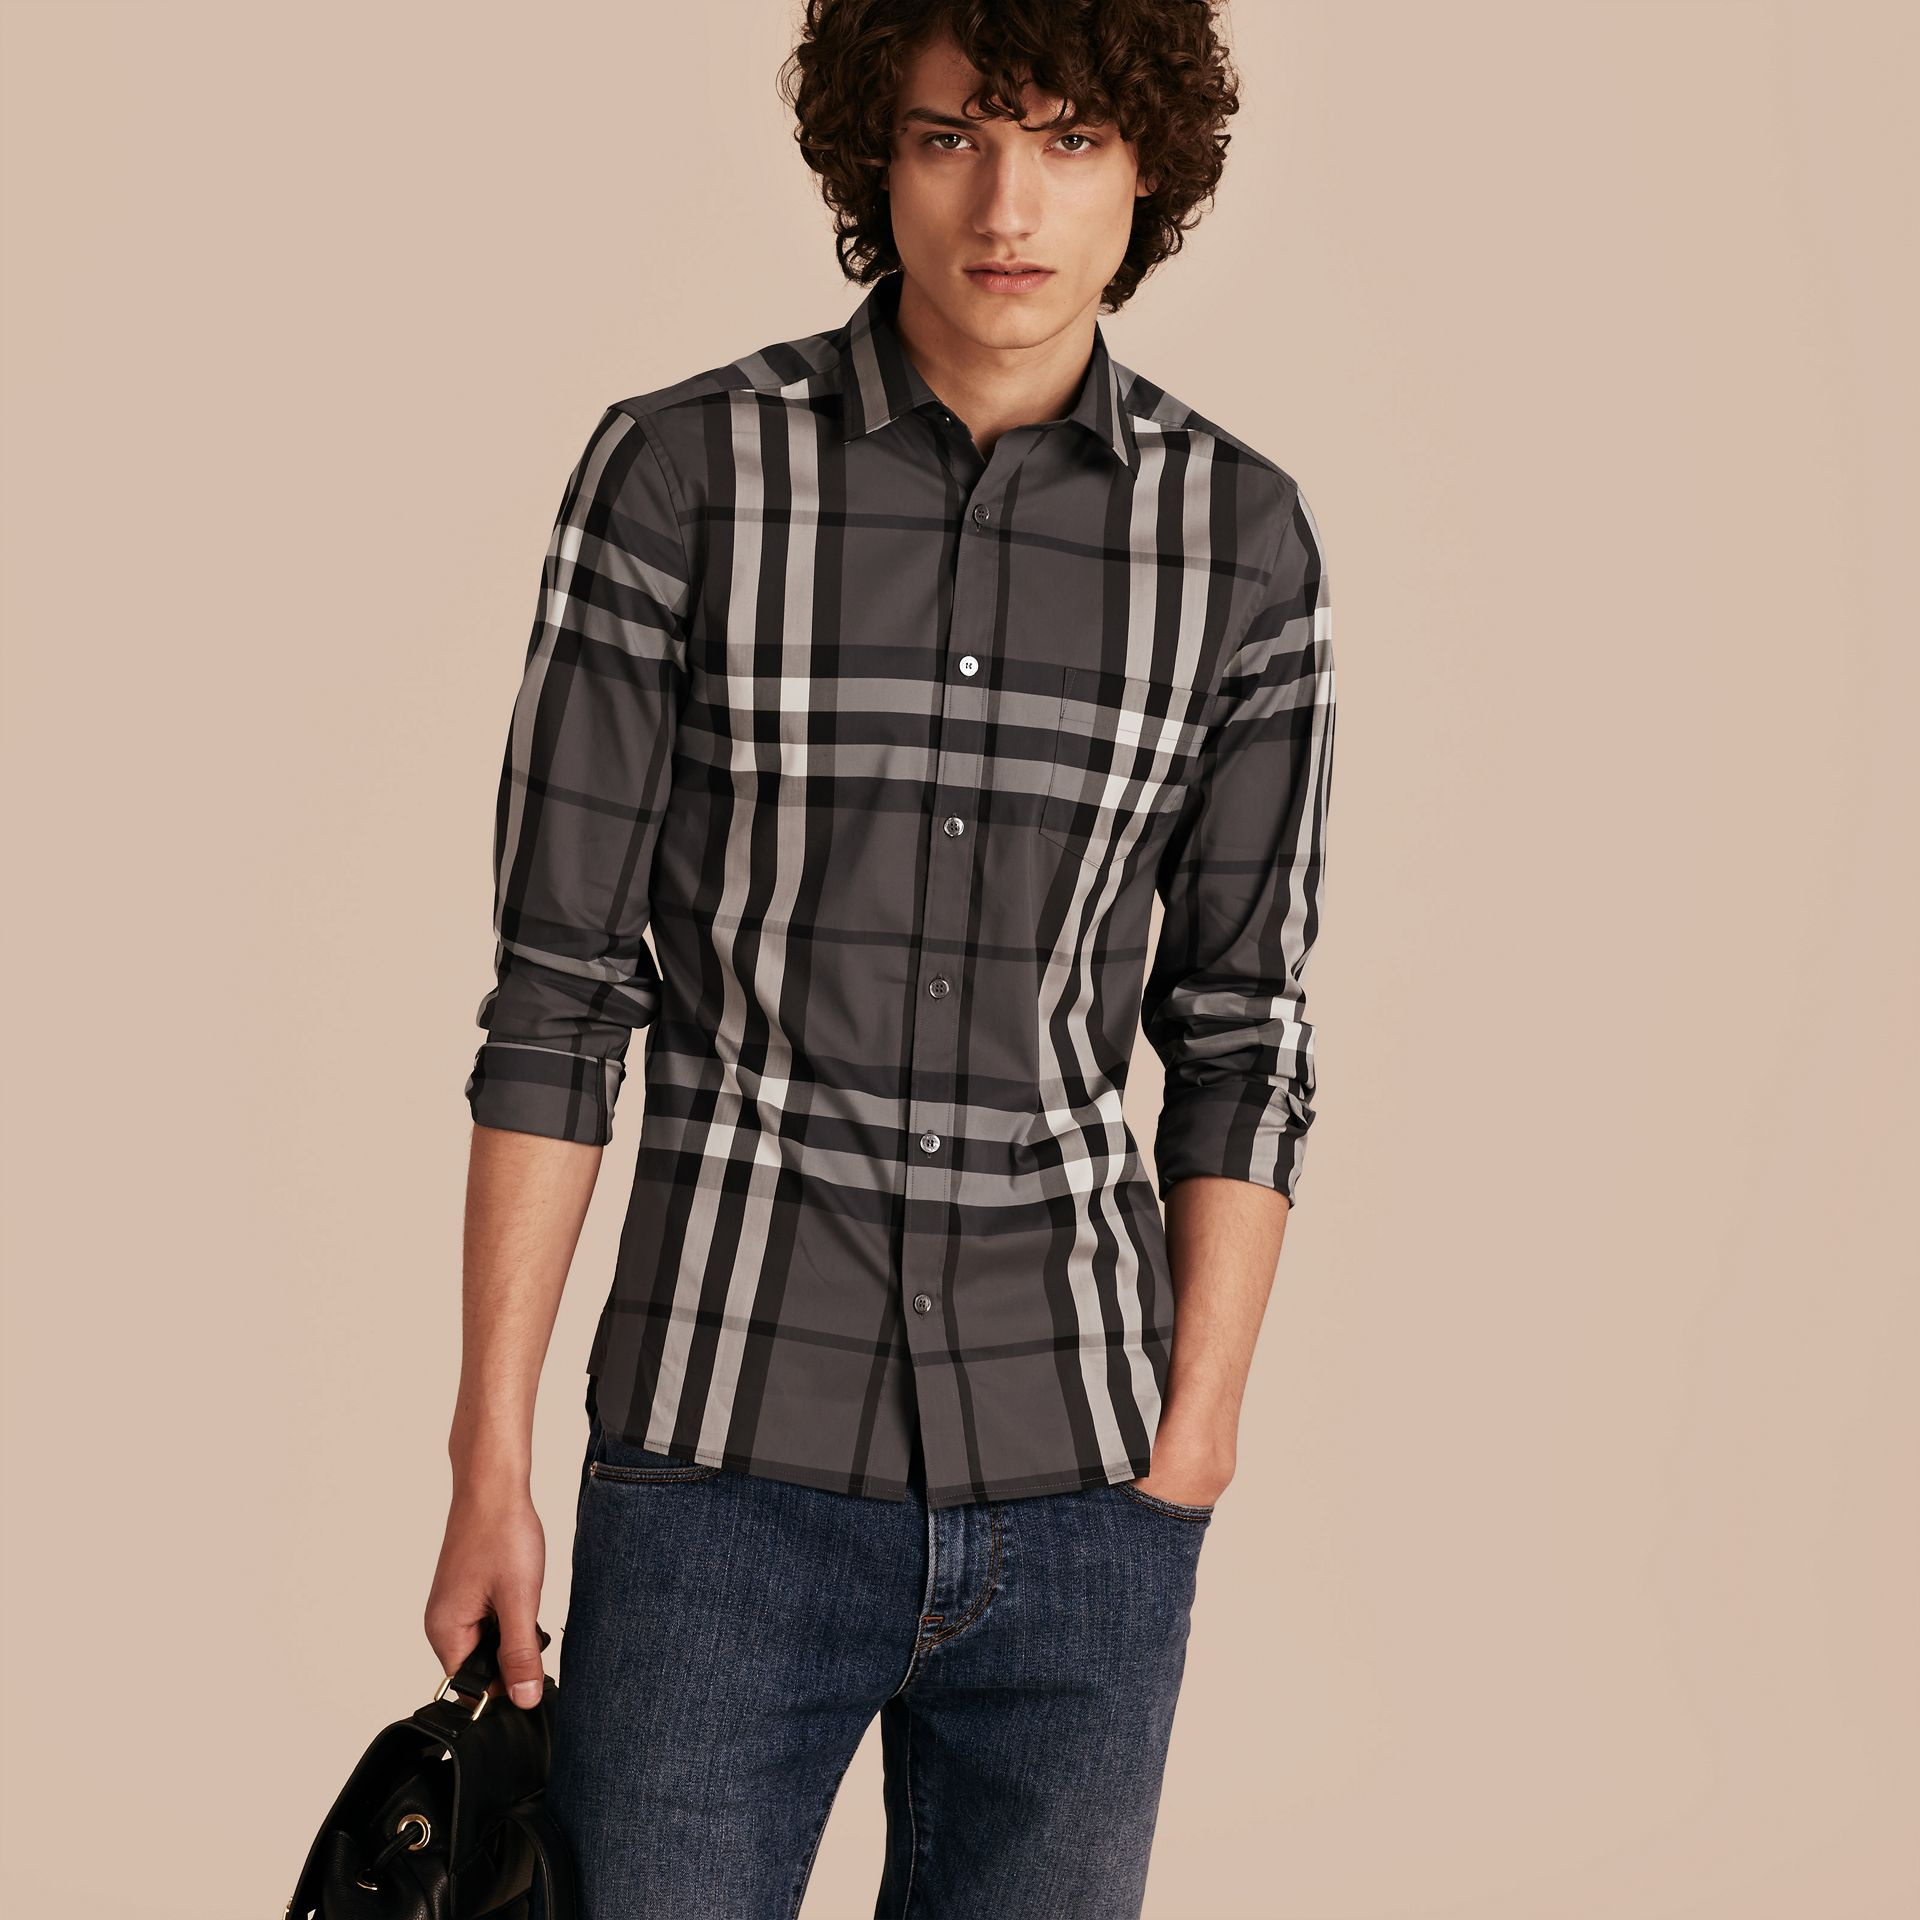 Chemise en coton extensible à motif check (Anthracite) - Homme | Burberry - photo de la galerie 5